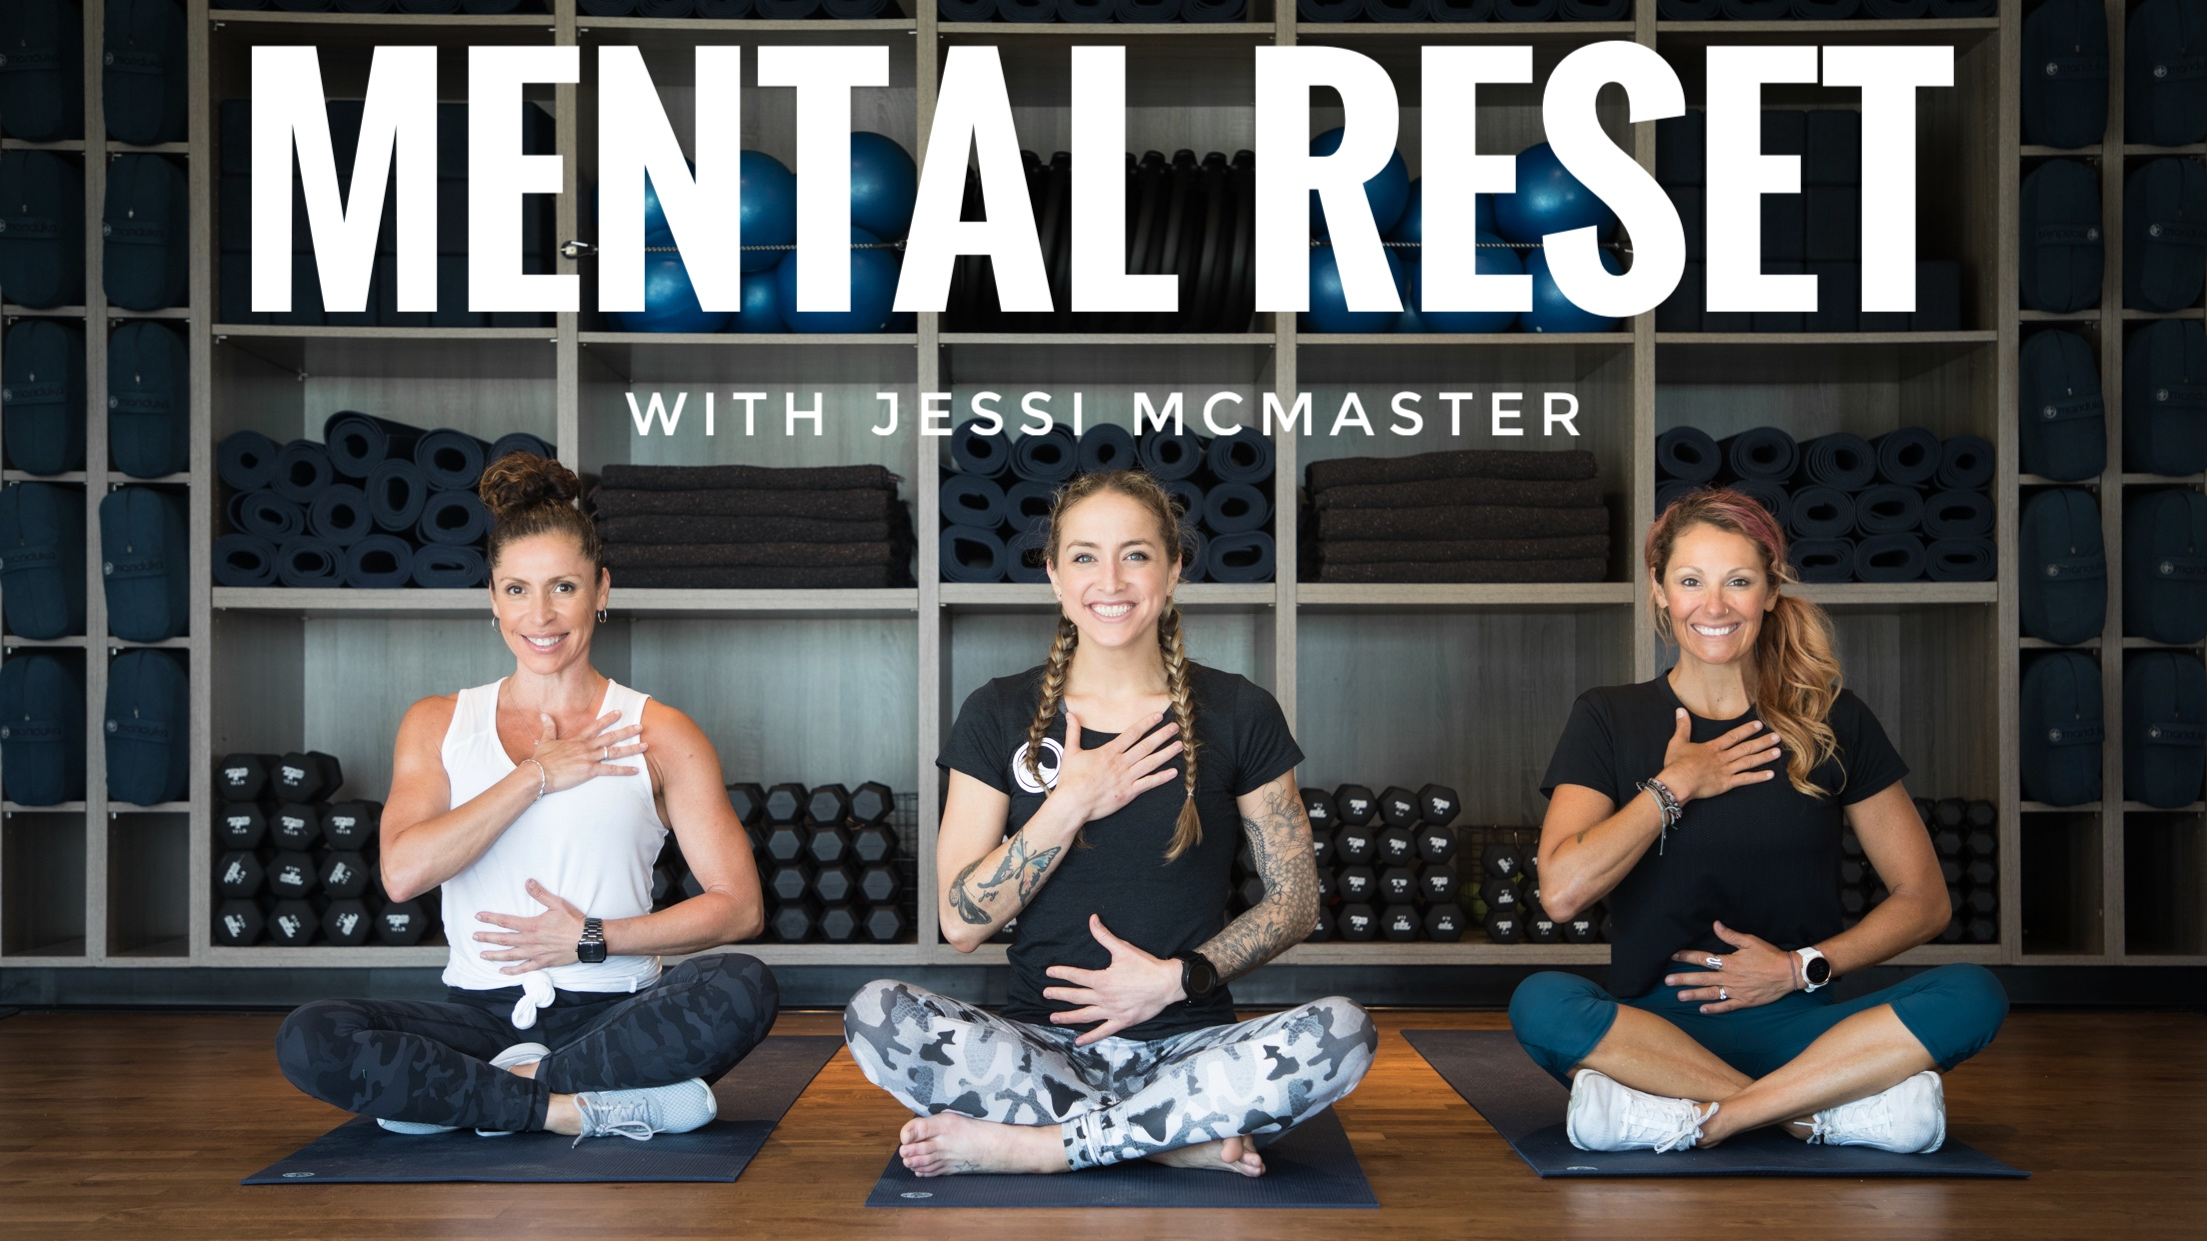 Mental Reset with Jessi McMaster